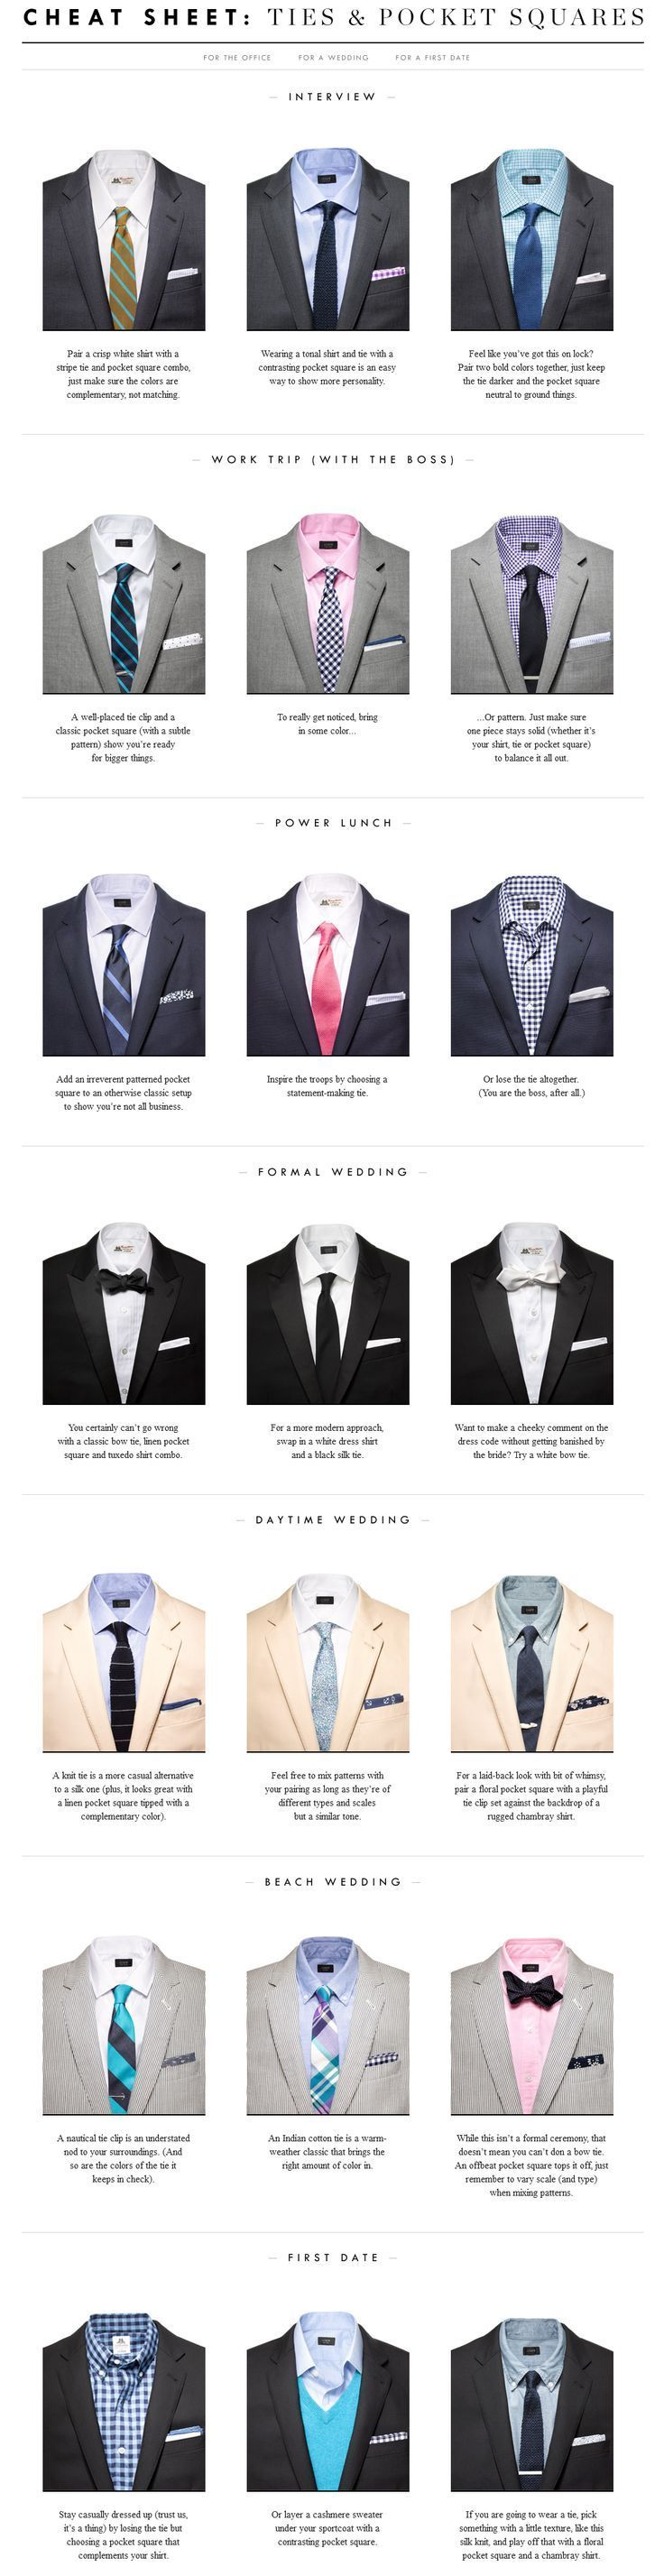 guide to mens suit jackets pinteres